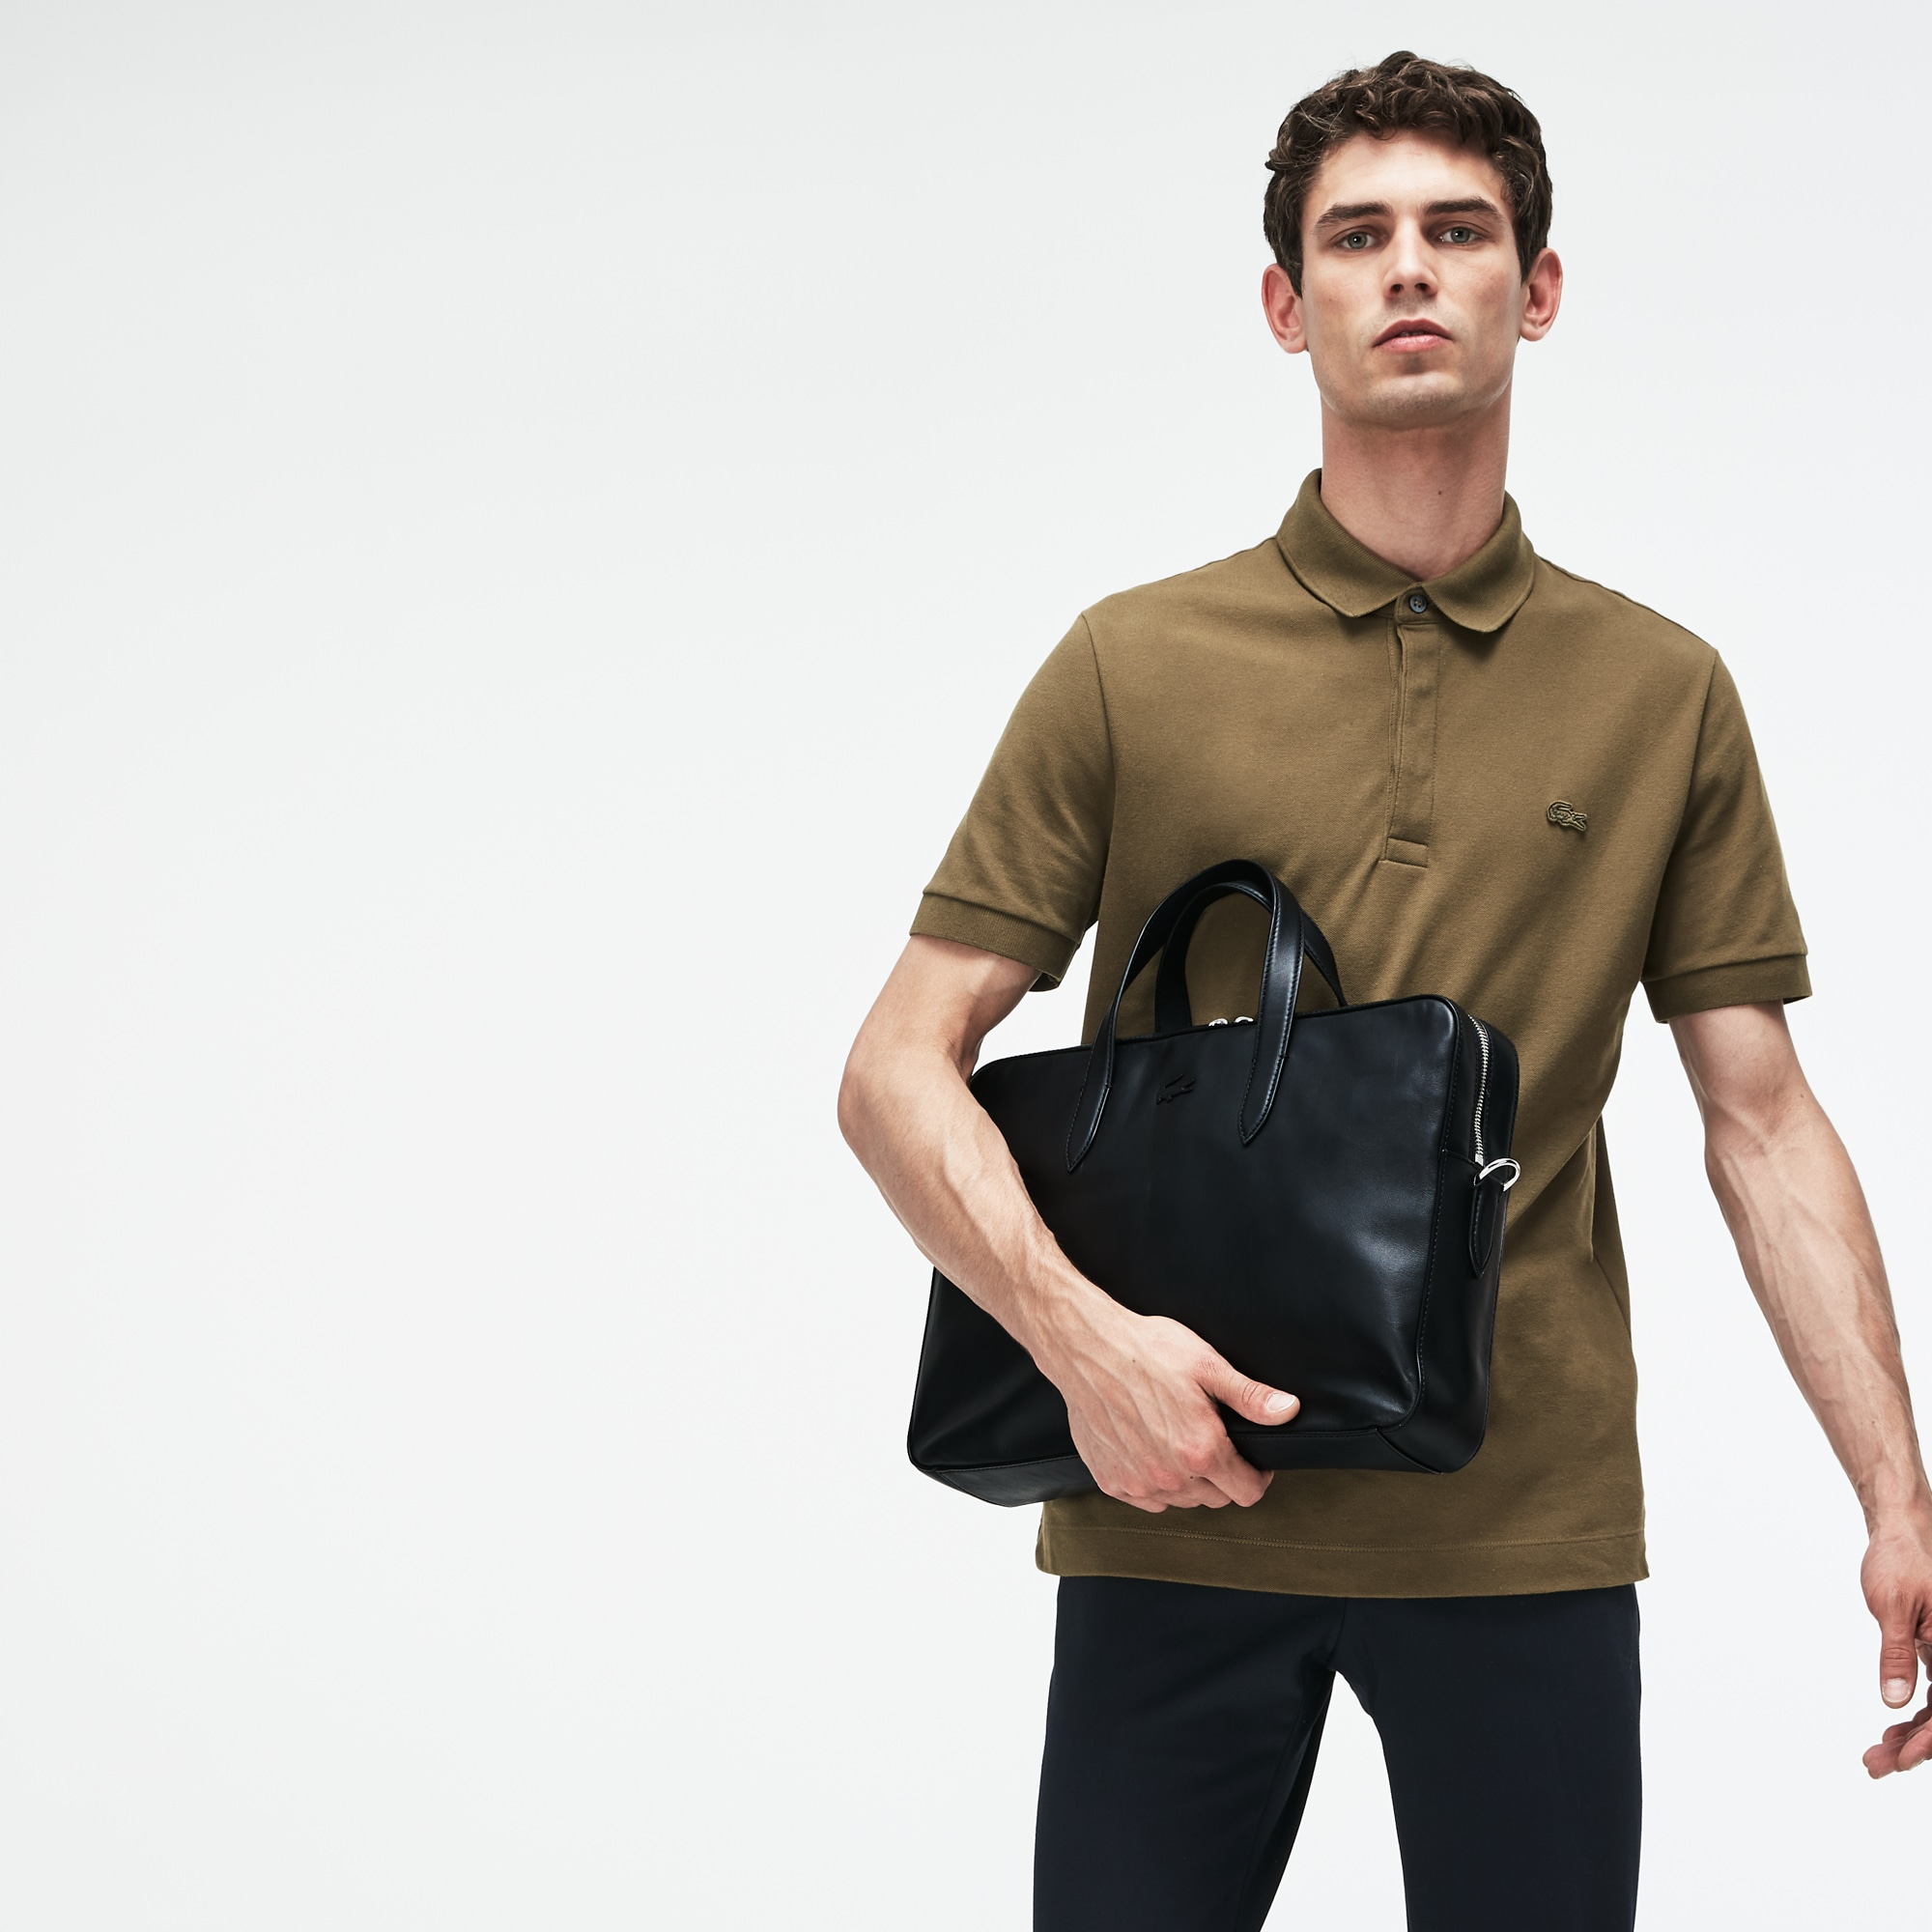 Maroquinerie Lacoste Maroquinerie Preview Lacoste Preview Lacoste Maroquinerie Preview Preview Lacoste Maroquinerie q7TXRwa